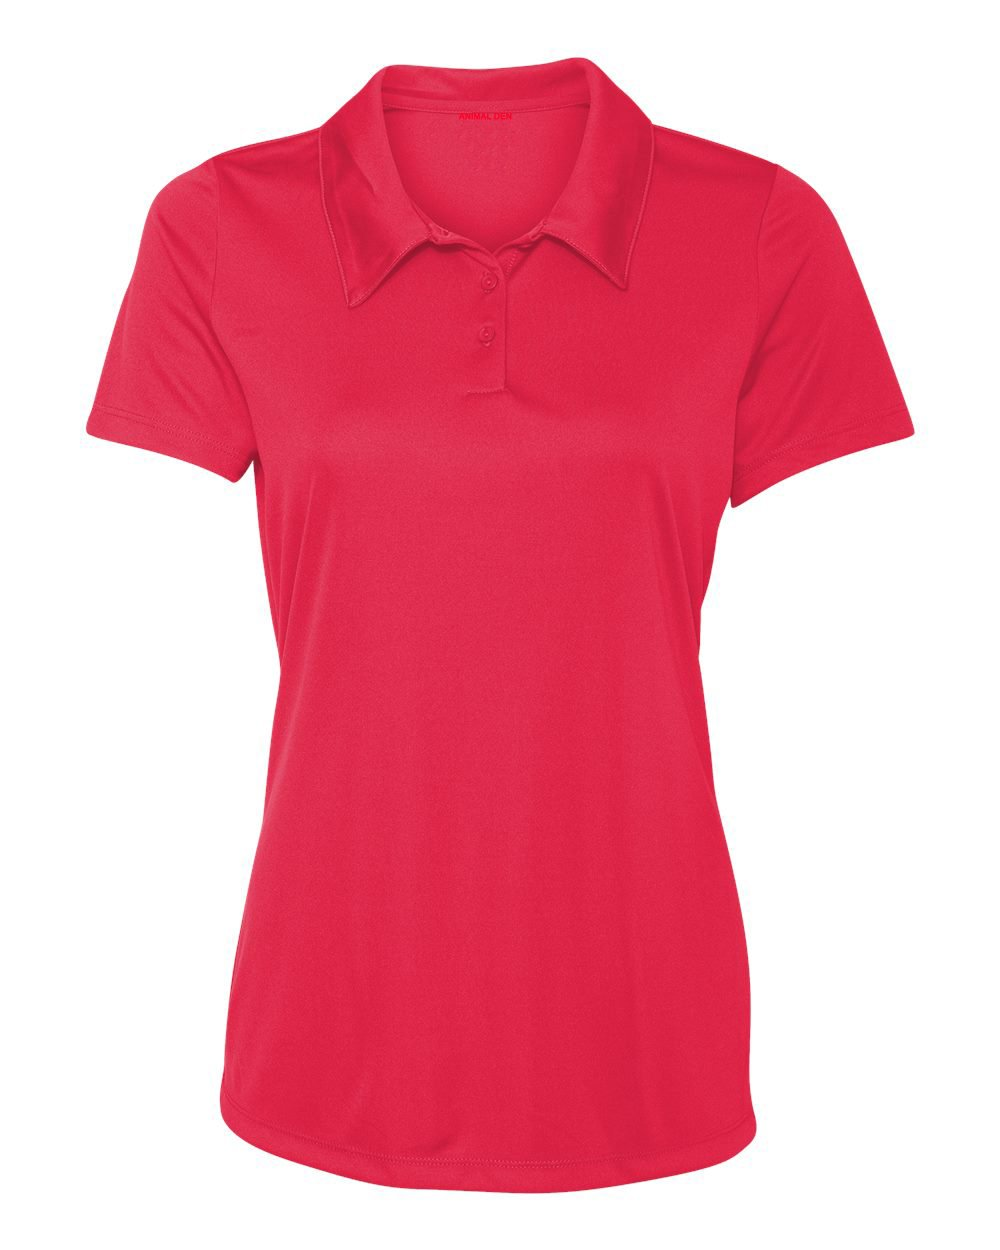 Animal Den Women's Dry-Fit Golf Polo Shirts 3-Button Golf Polo's in 20 Colors XS-3XL Shirt RED-XL by Animal Den